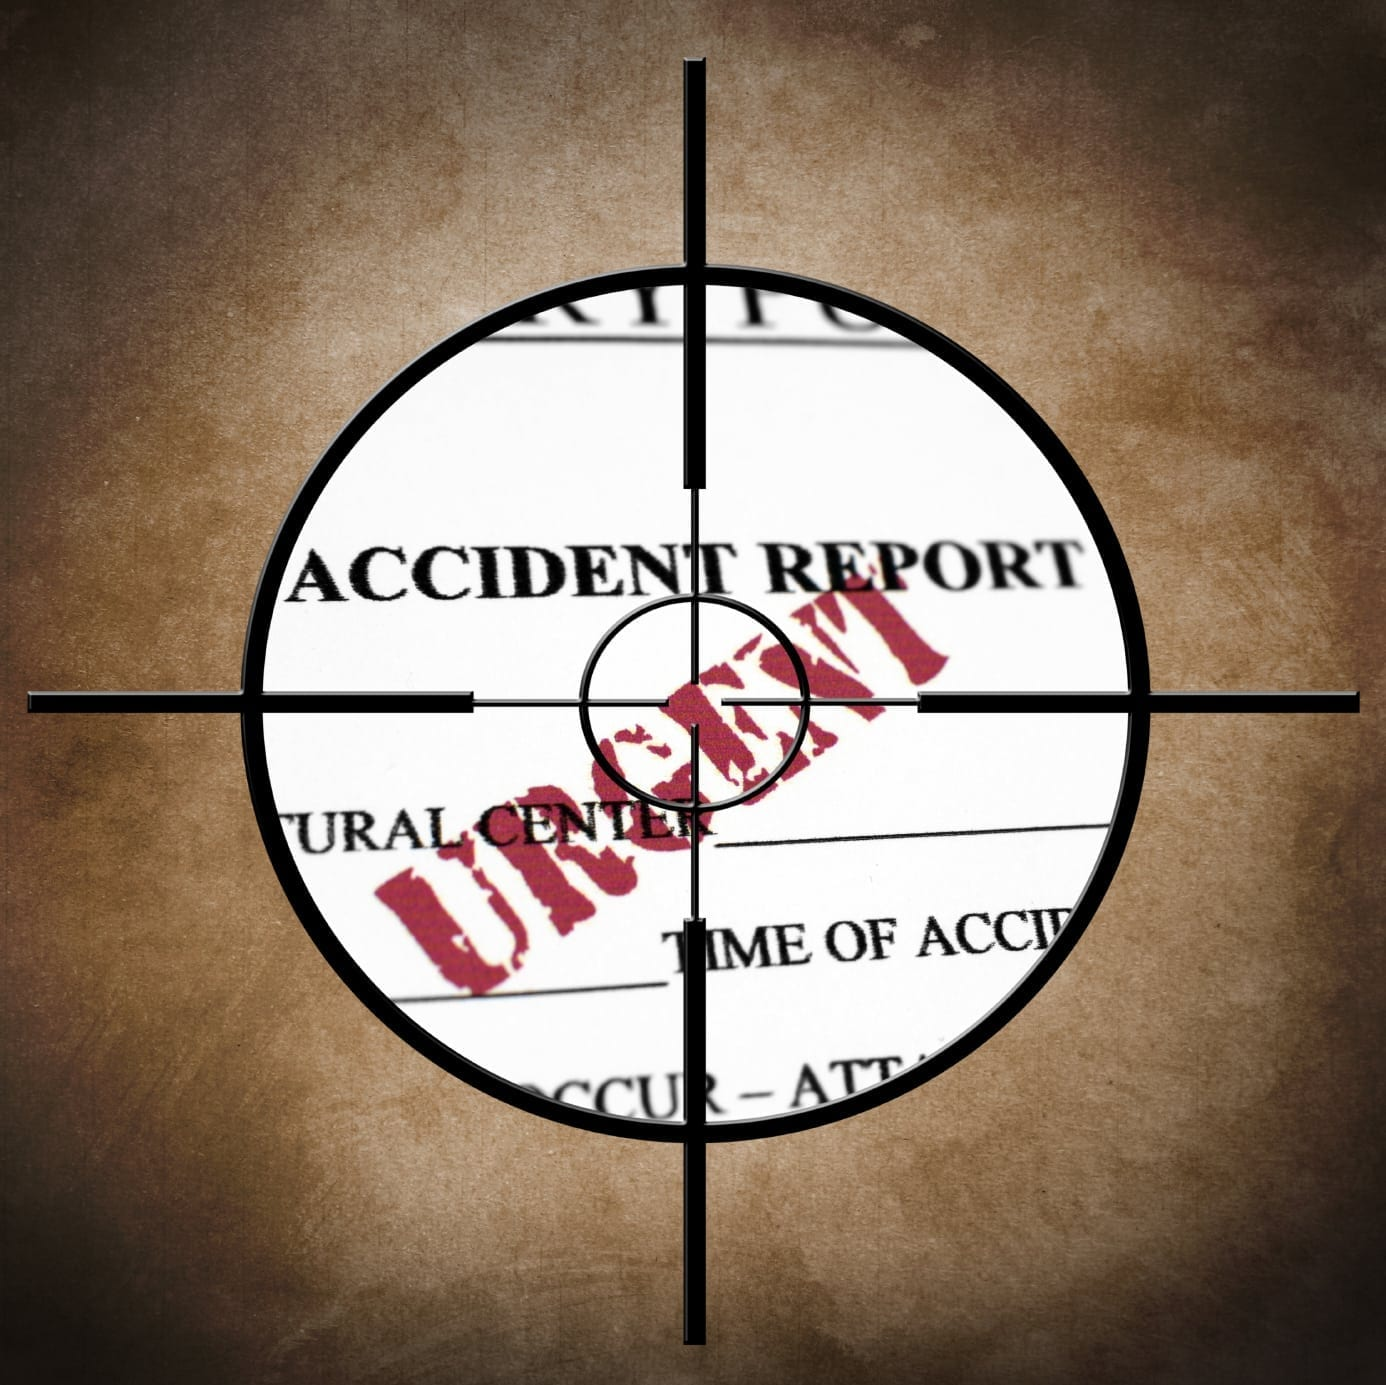 Urgent Accident Report Stock Photo